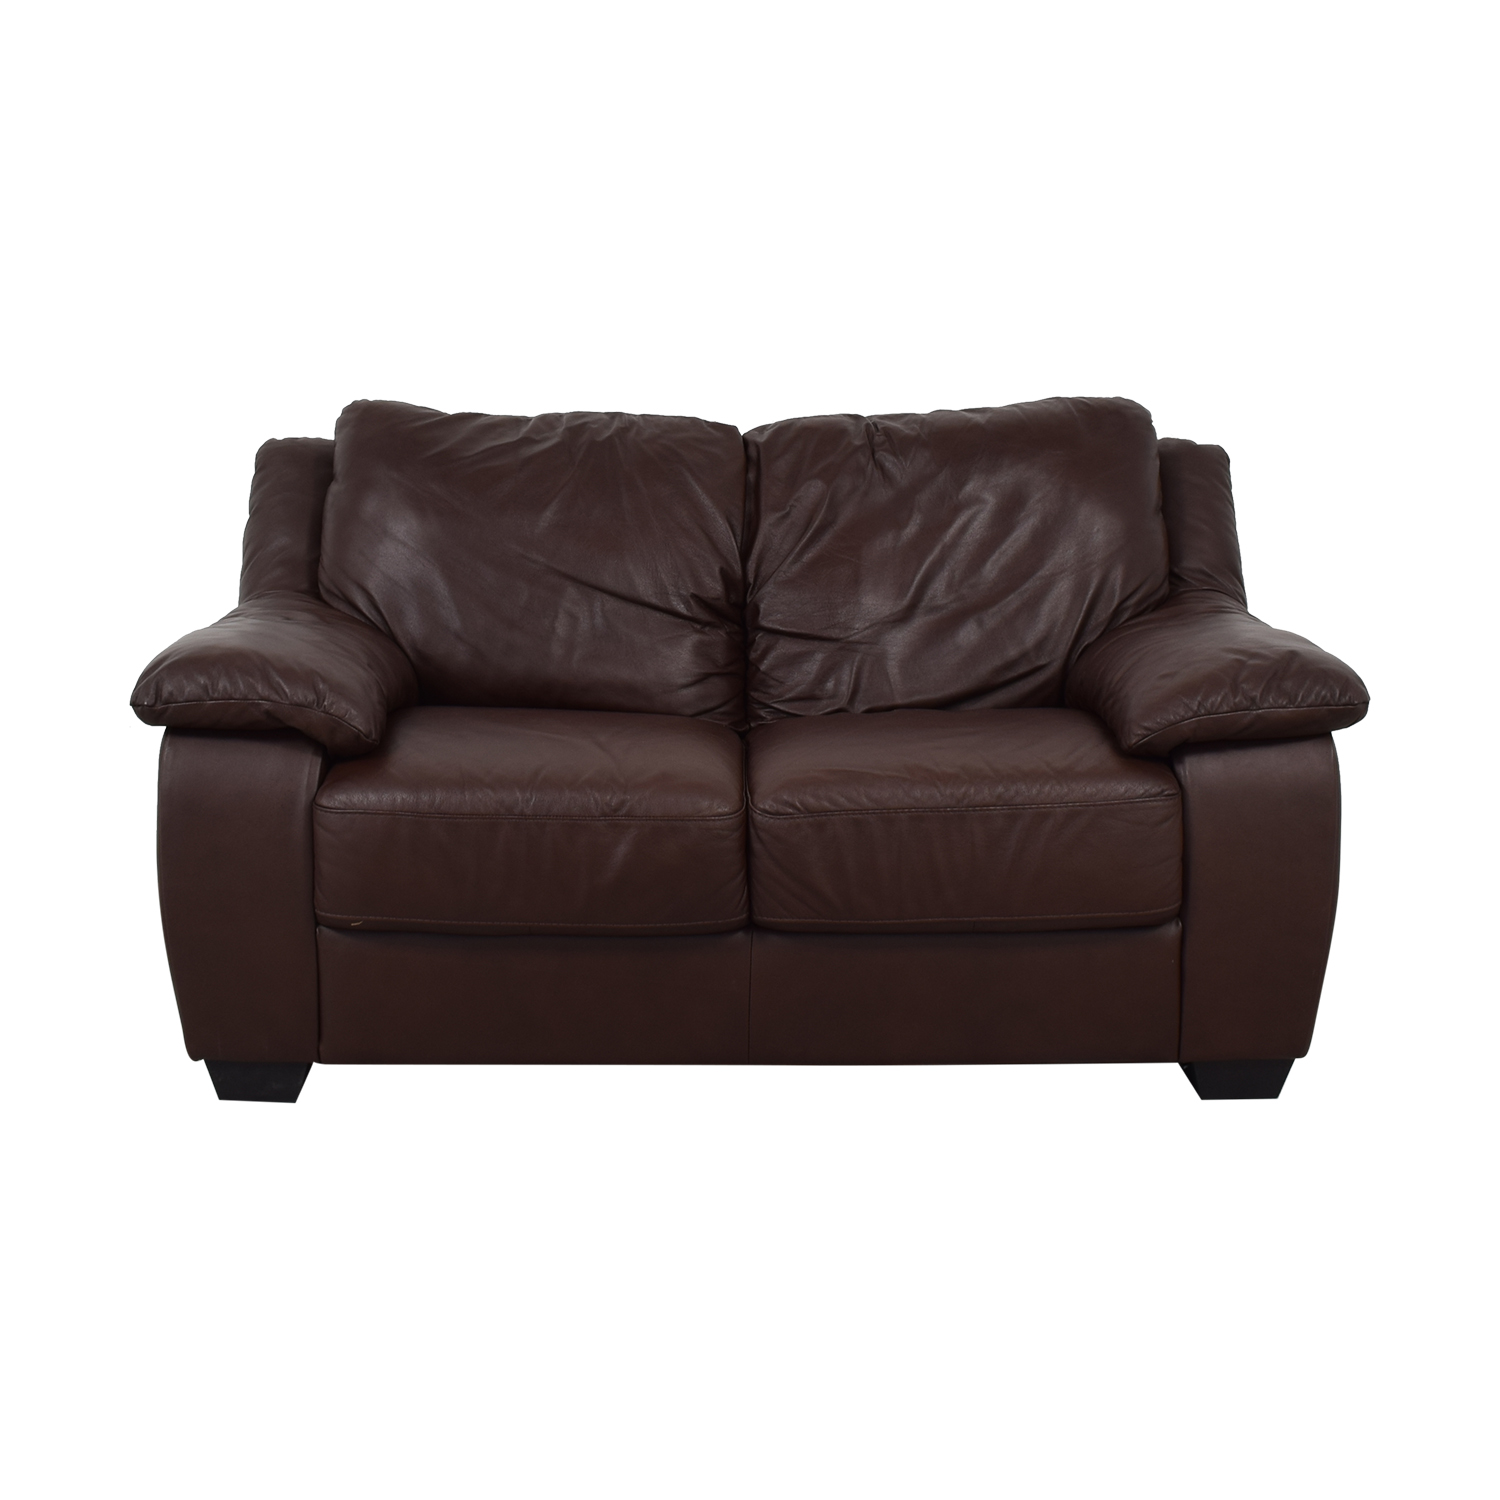 Natuzzi Natuzzi Brown Two-Cushion Loveseat used